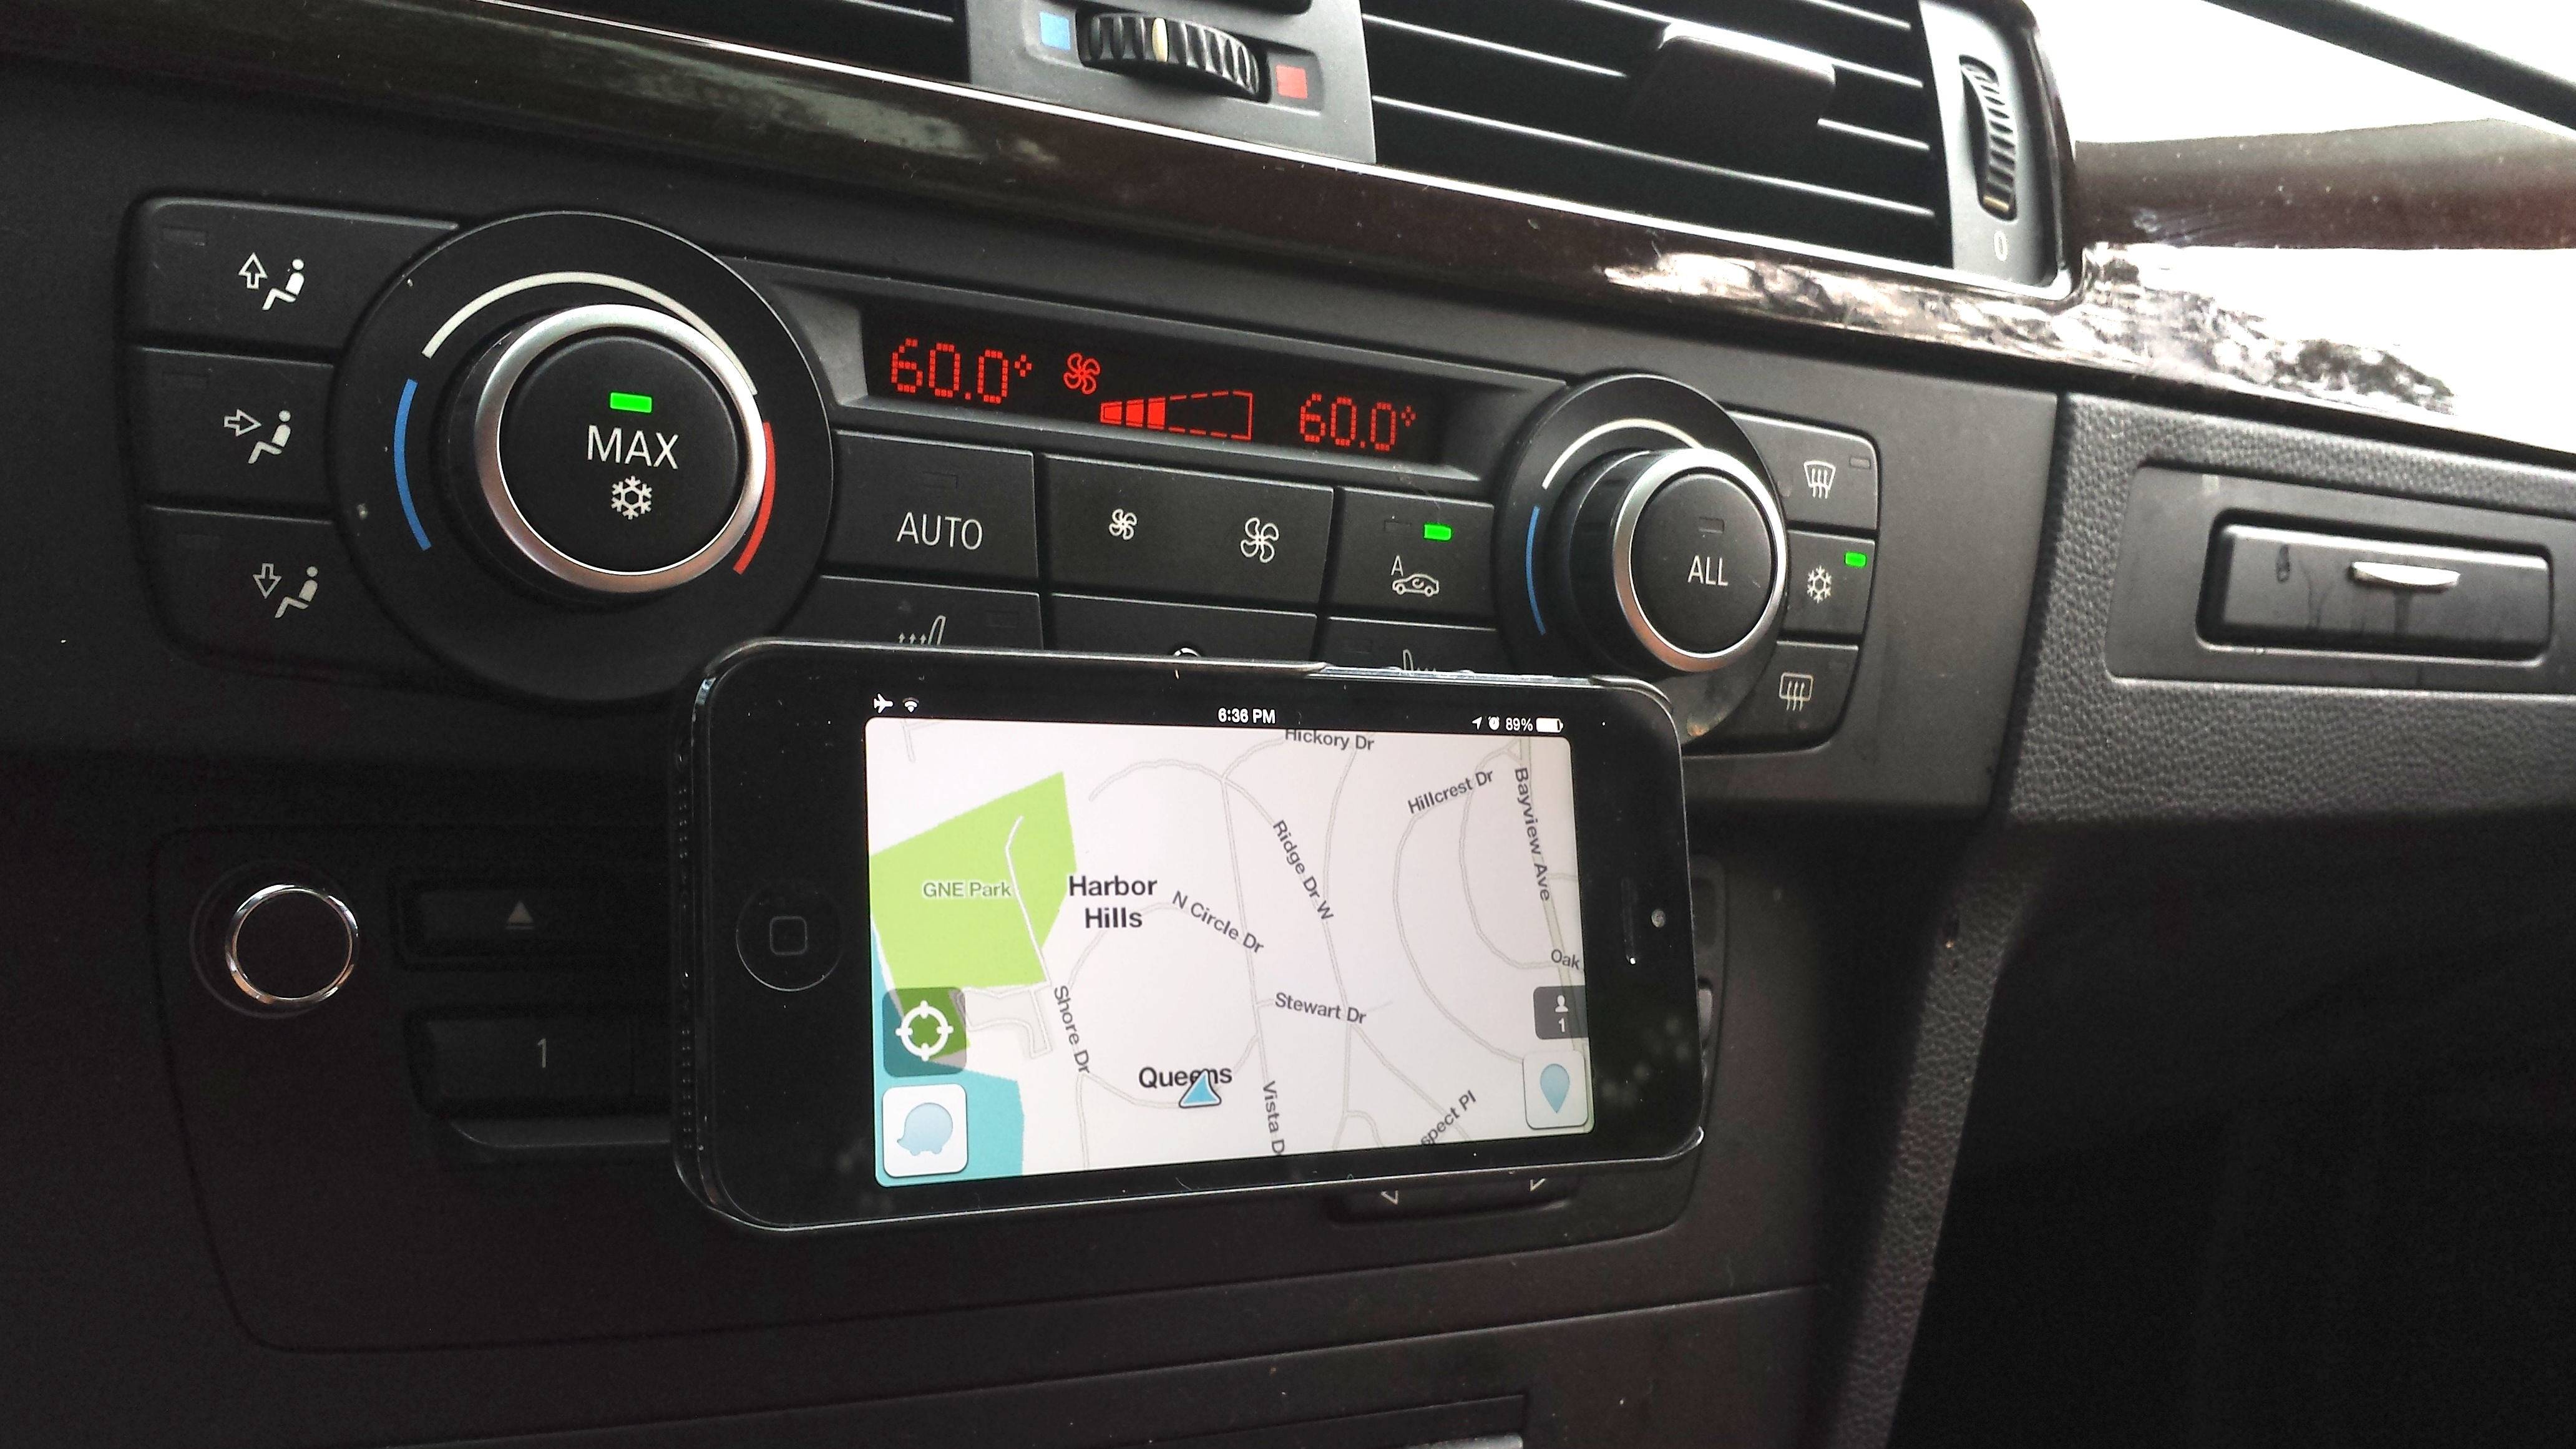 Magnetic Car Mount for iPhone, Droid and other Smartphones